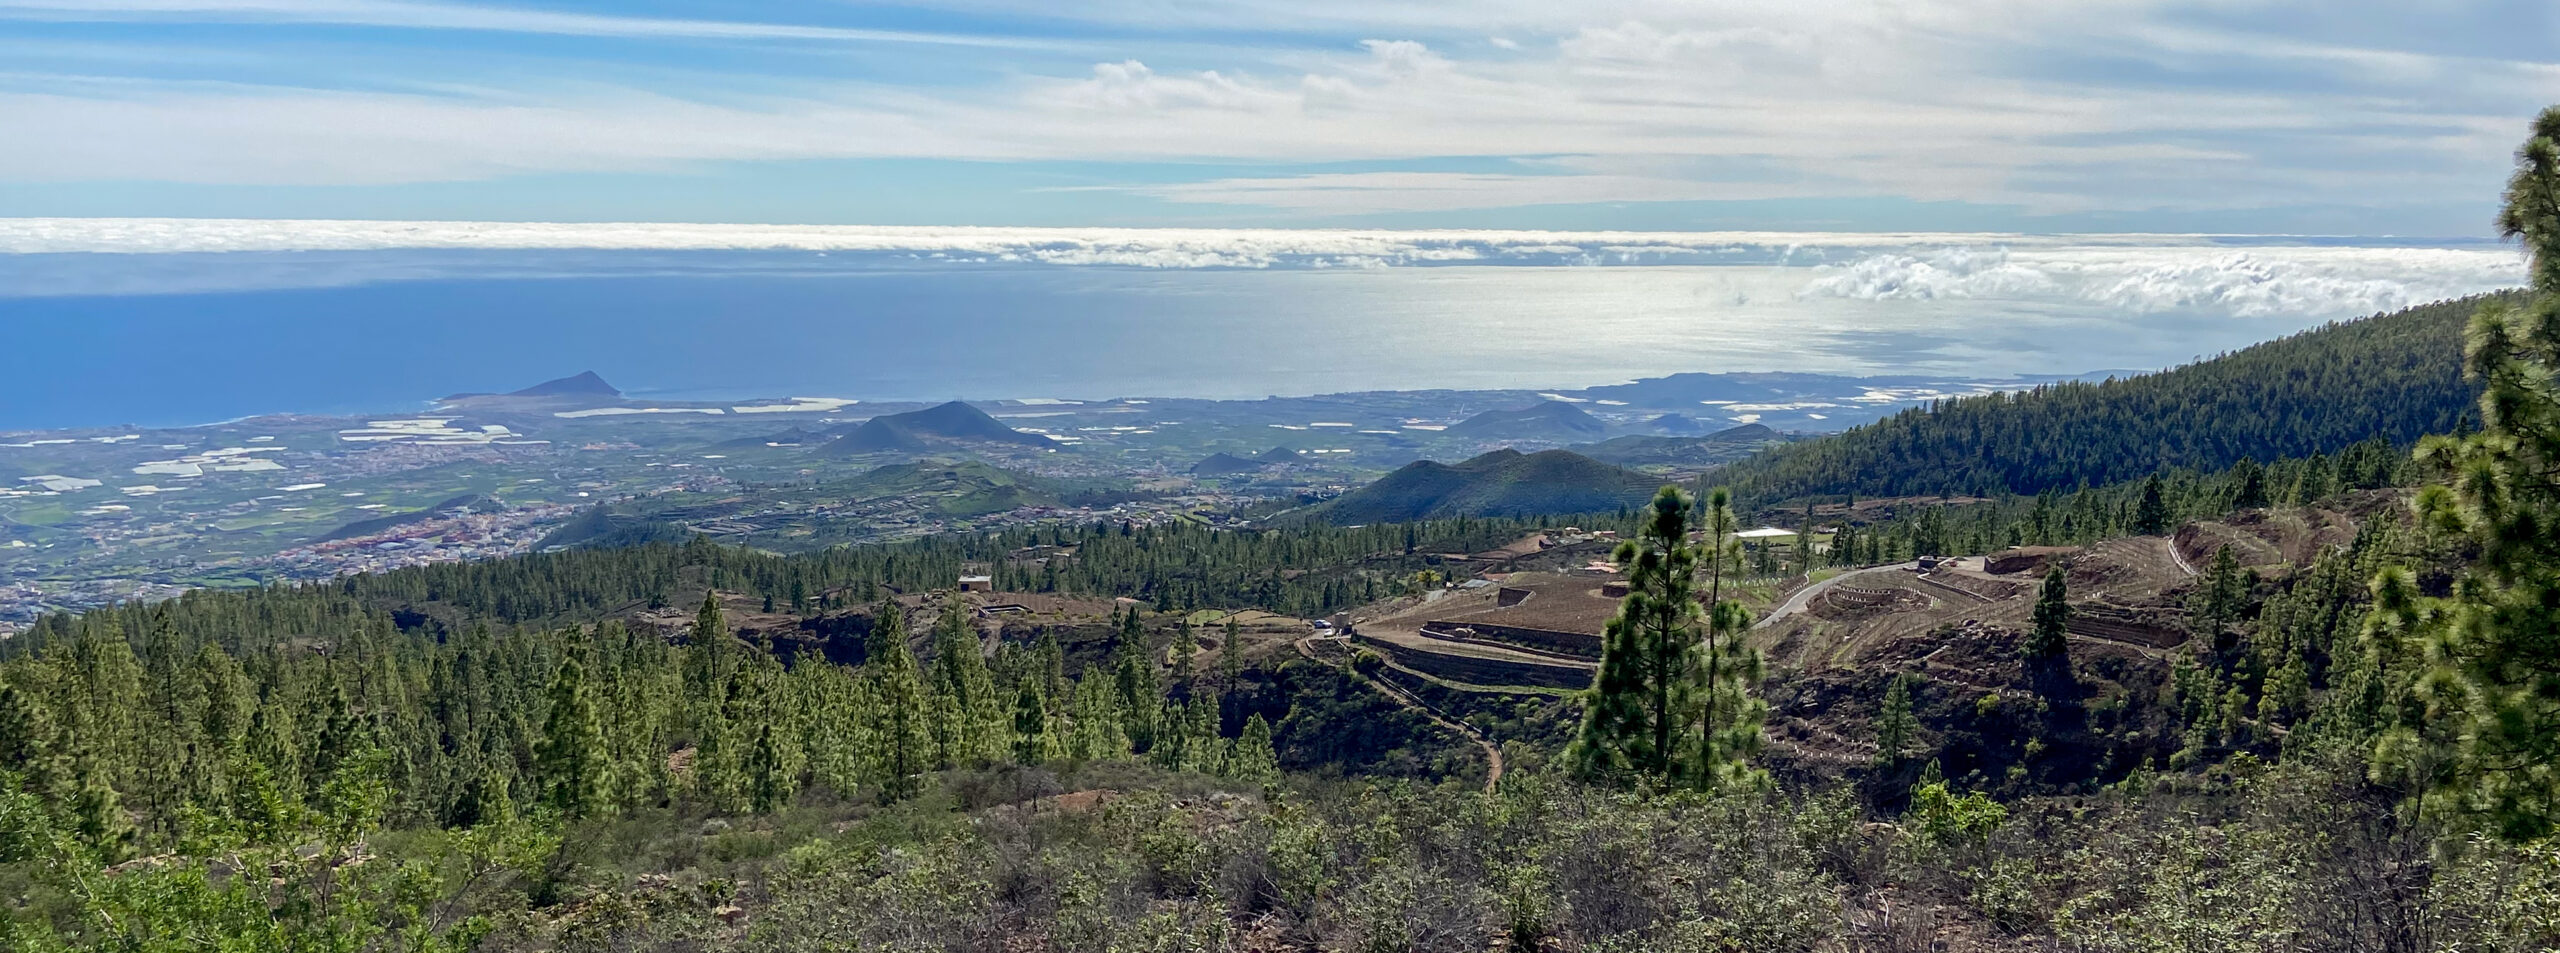 View over terraced fields to the east coast of Tenerife